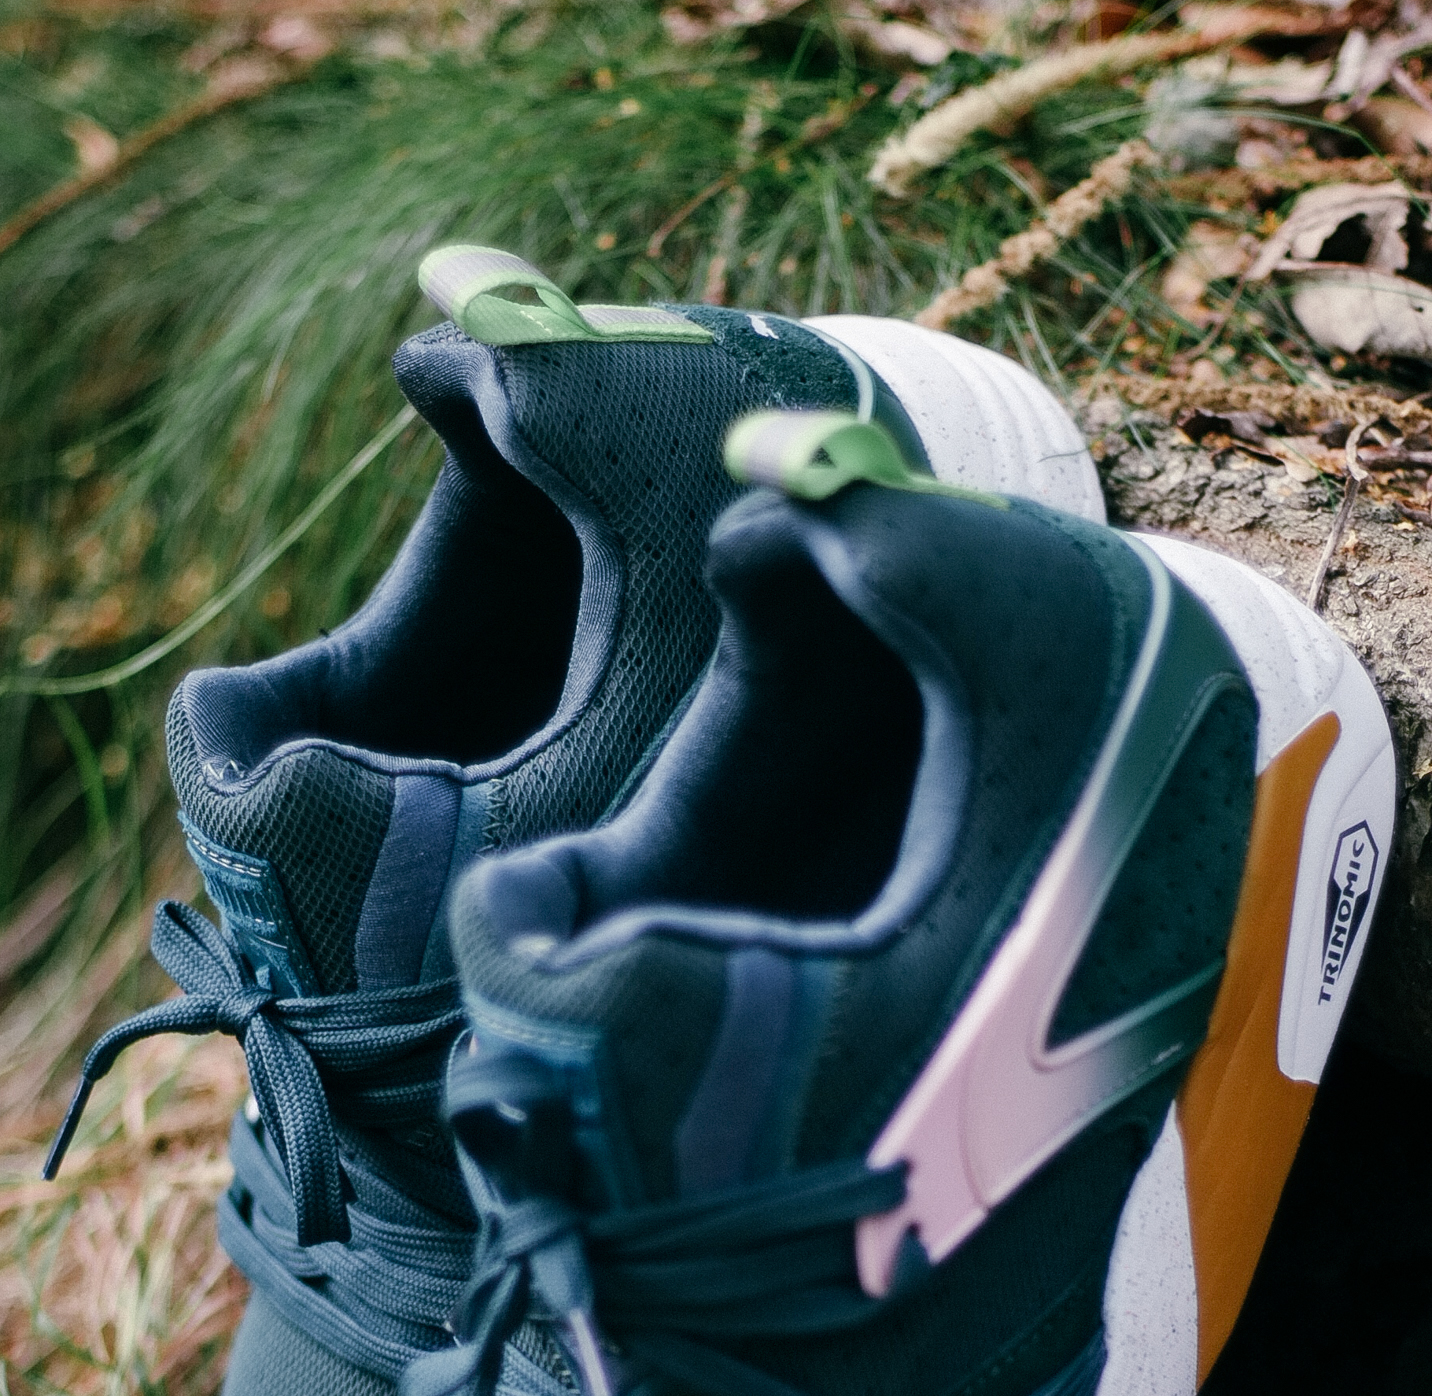 Size-Puma-Blaze-Glory-Jungle-3